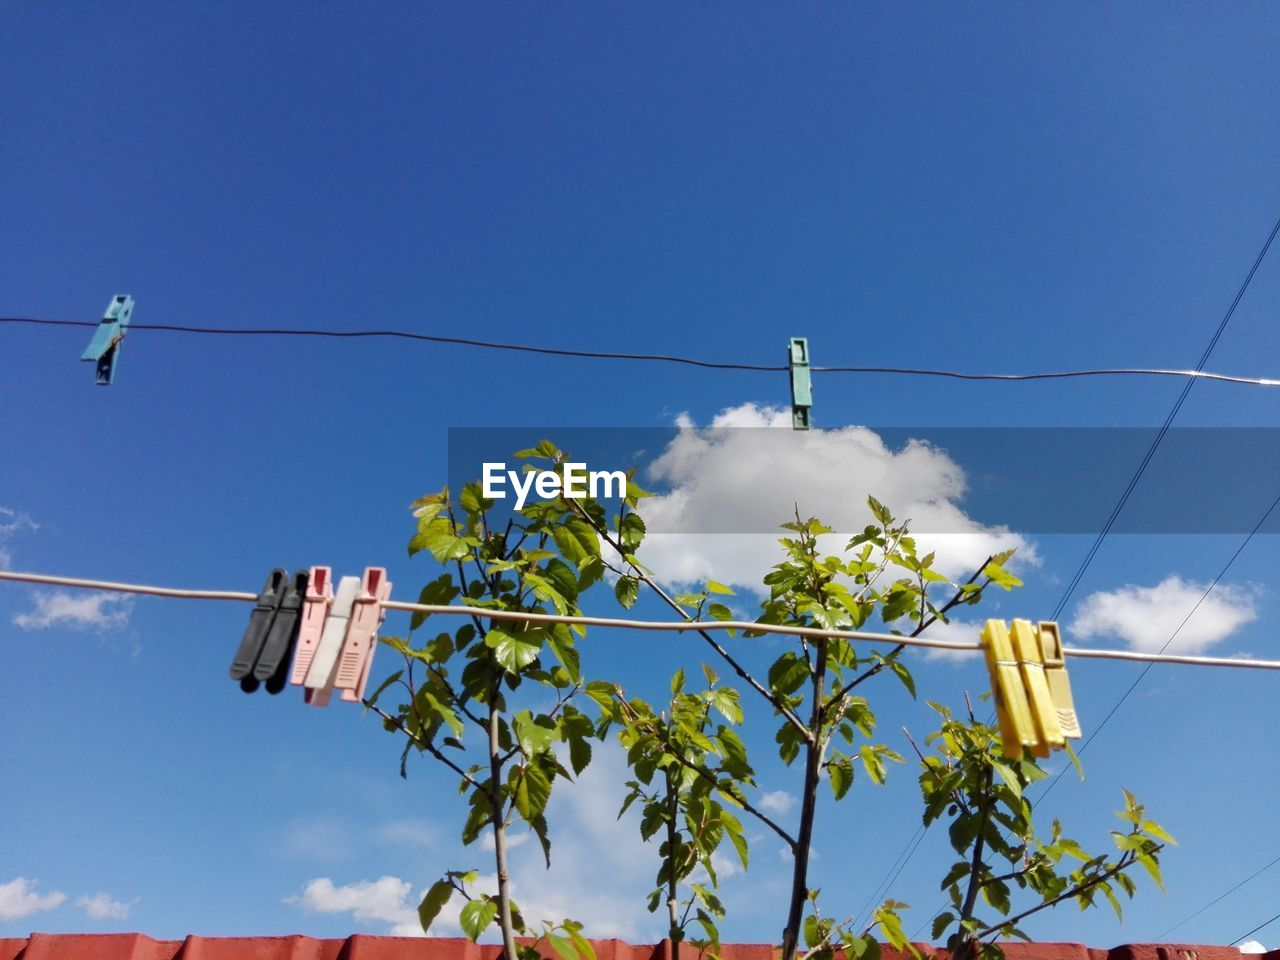 sky, low angle view, blue, plant, hanging, cable, nature, no people, day, clothesline, clothespin, electricity, cloud - sky, outdoors, sunlight, tree, copy space, clothing, architecture, power line, power supply